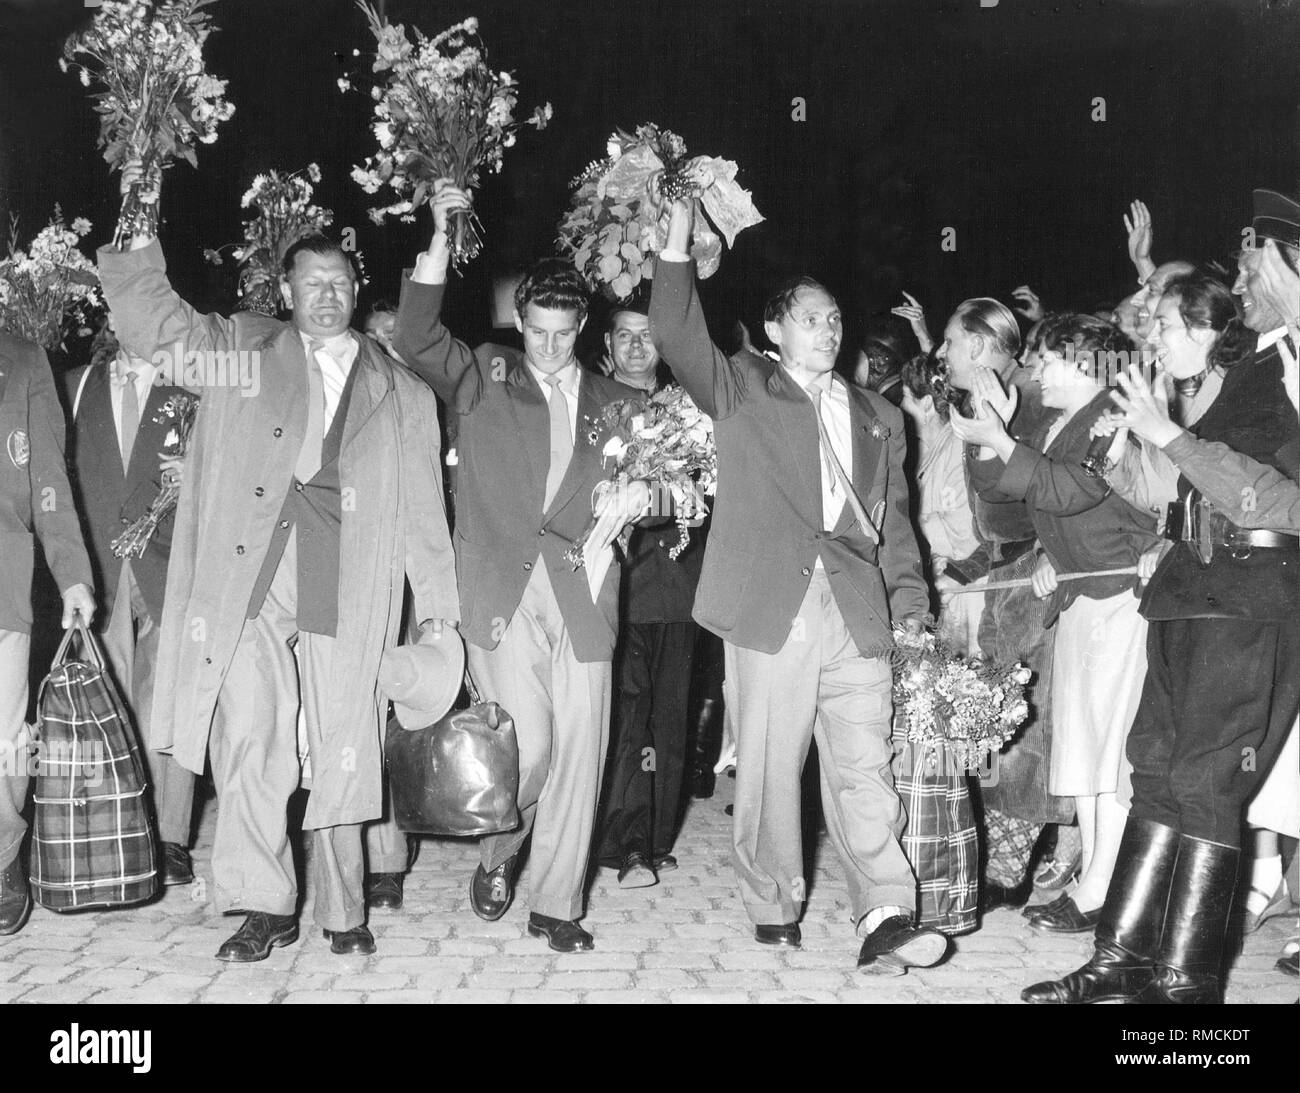 Arrival of the team in Lindau. Max Morlock, Hans Schaefer and the Vice President of the DFB Huber (from right) welcoming the fans. In 1954, Germany won its first World Cup in Switzerland. Stock Photo